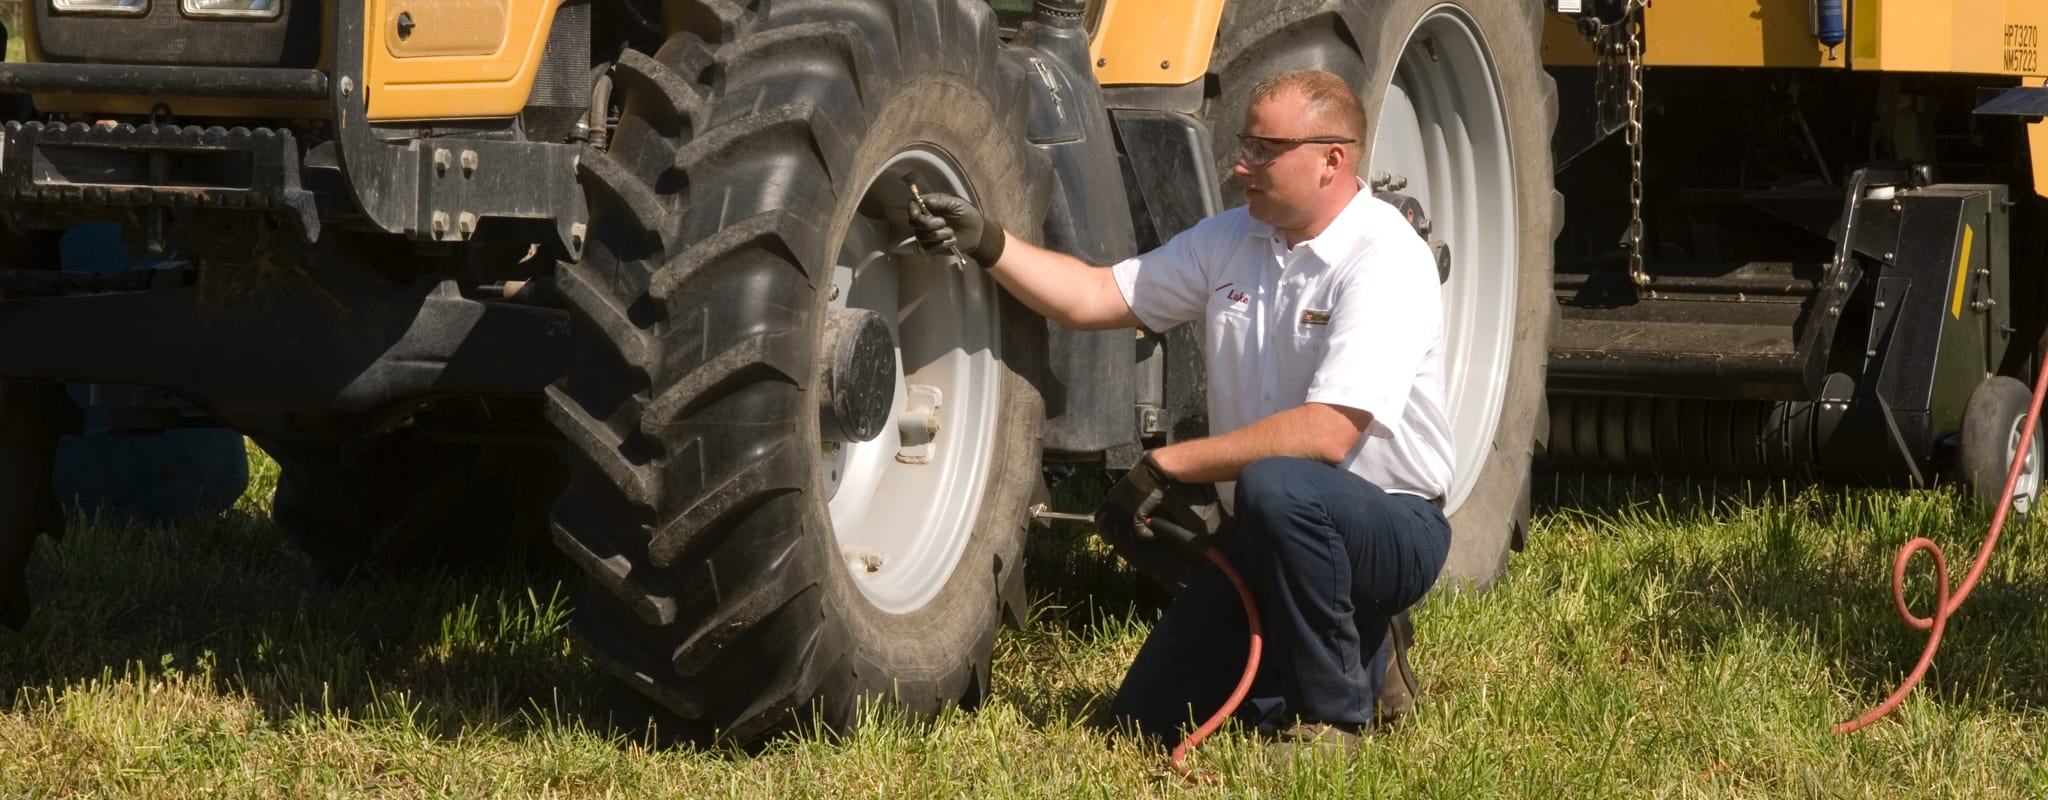 A Les Schwab technician checks the air pressure of a tractor tire.